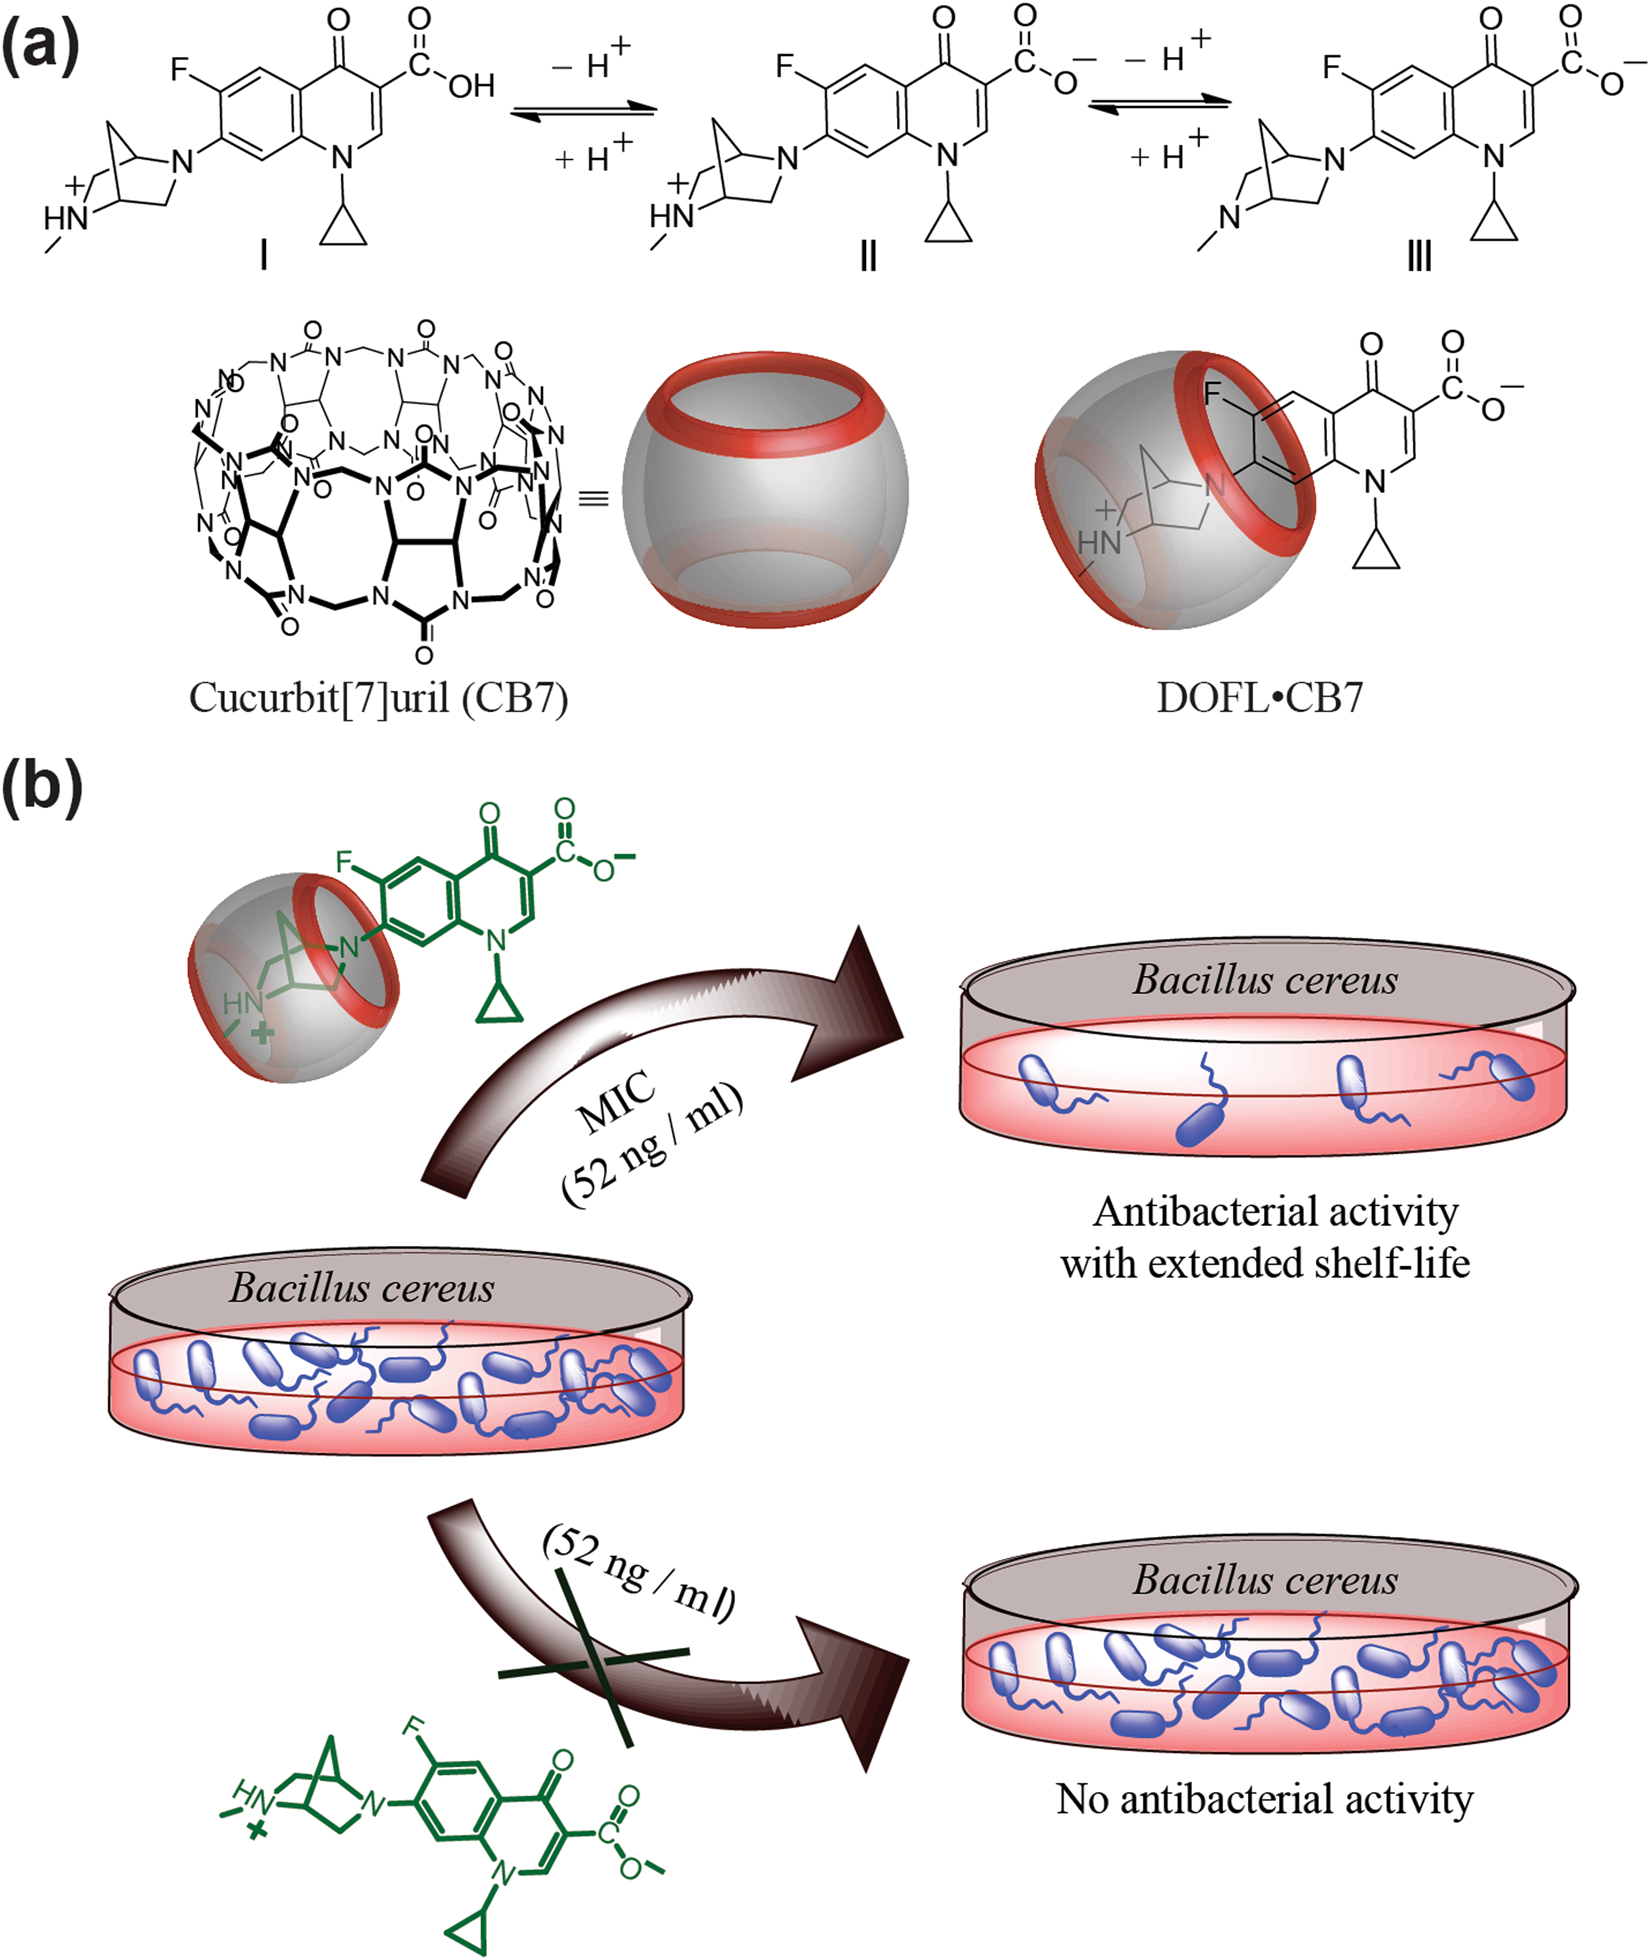 A Supramolecular Approach For Enhanced Antibacterial Activity And 2003 Kia Spectra Kill Switch Extended Shelf Life Of Fluoroquinolone Drugs With Cucurbit7uril Scientific Reports